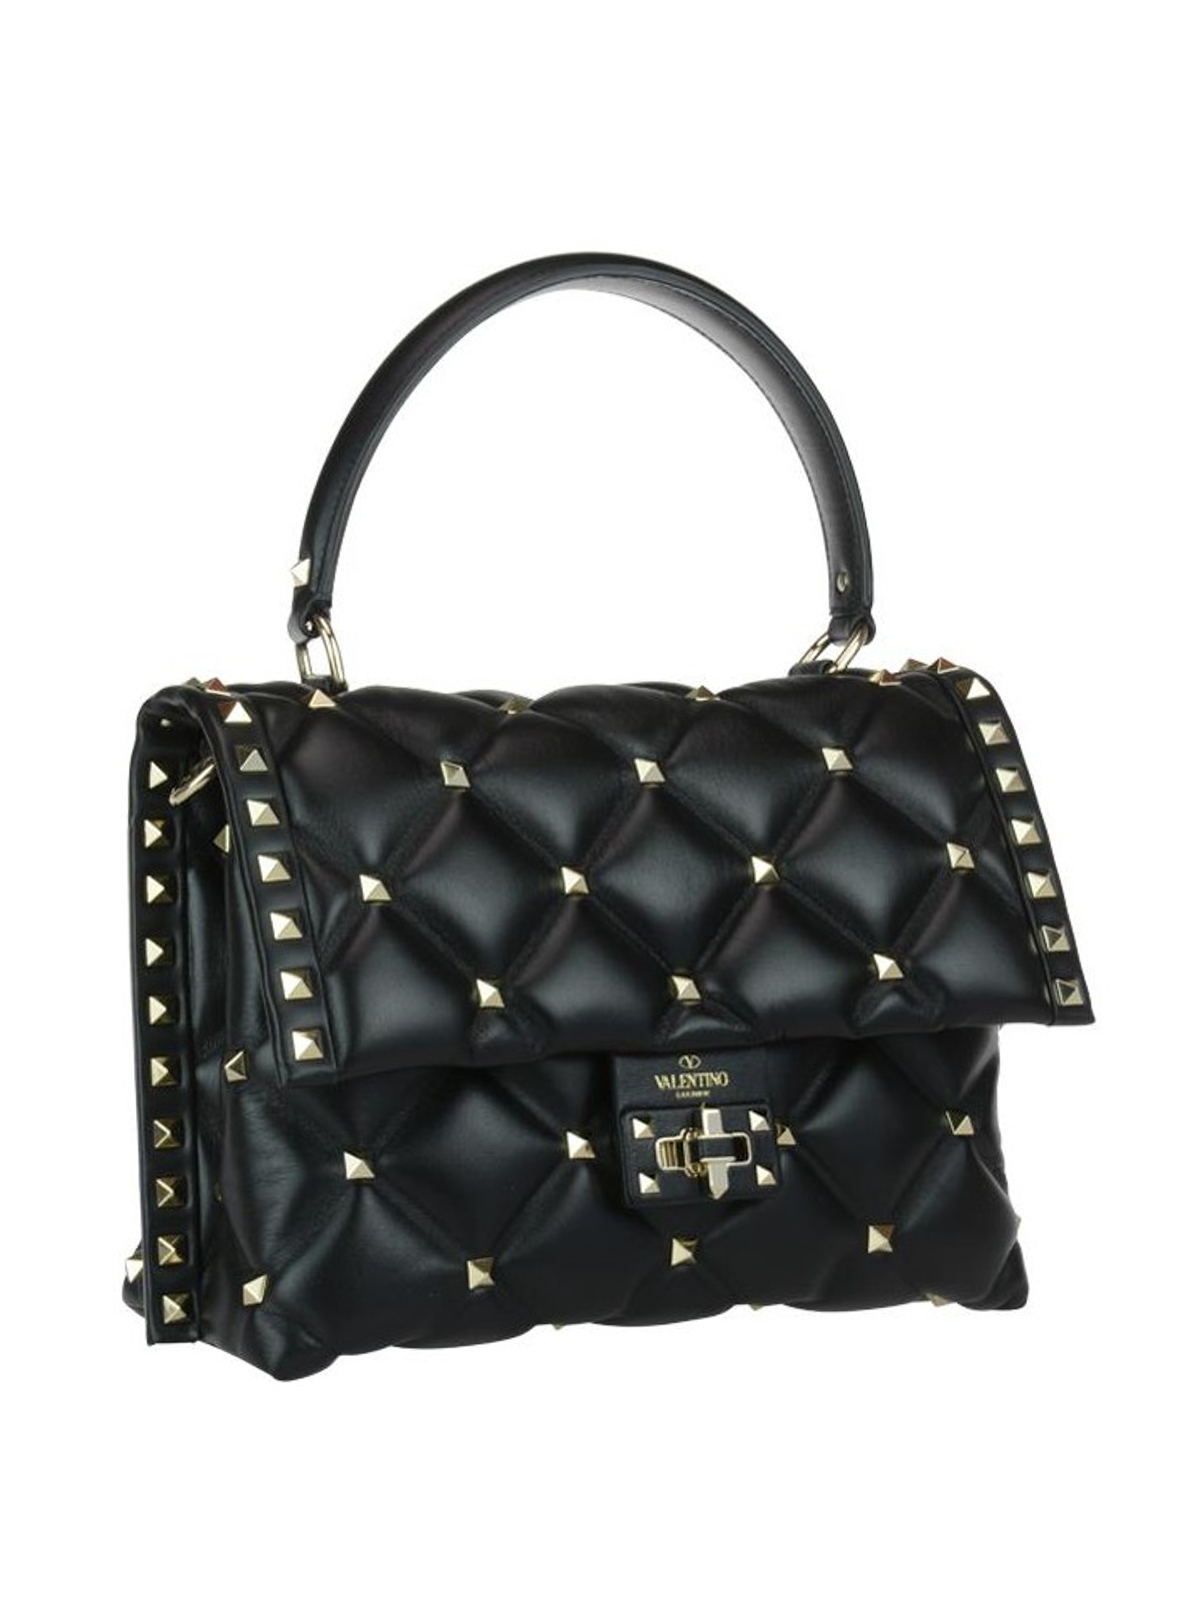 Valentino Garavani Candystud Black Nappa Bag Shoulder